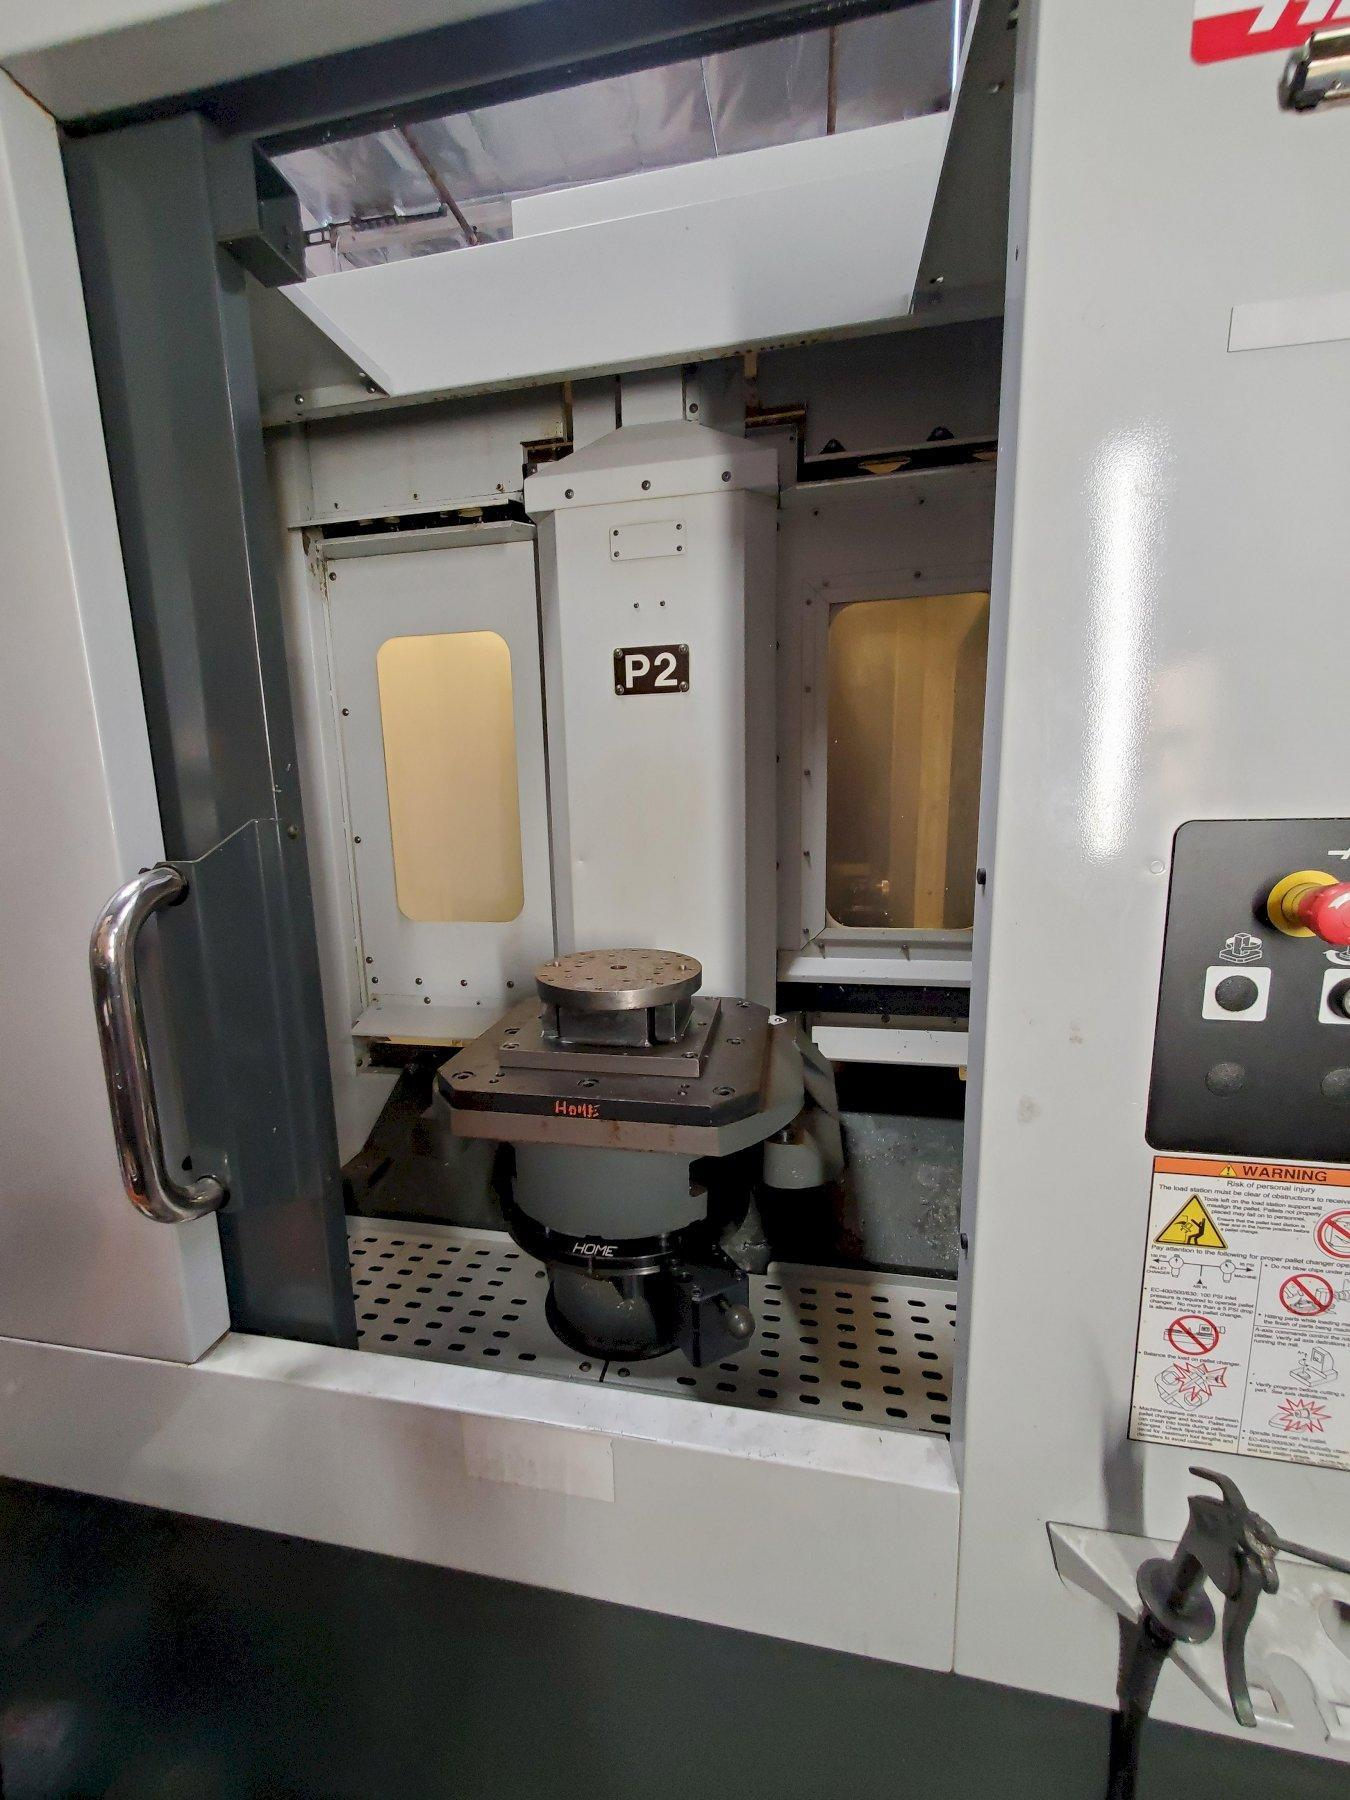 Haas EC-400-4AX HMC 2011 with: Dual Pallet, Probe, Through Spindle Coolant, 70+1 SMTC, 12k RPM Spindle, Programmable Coolant, High Speed Machining, and Chip Conveyor.